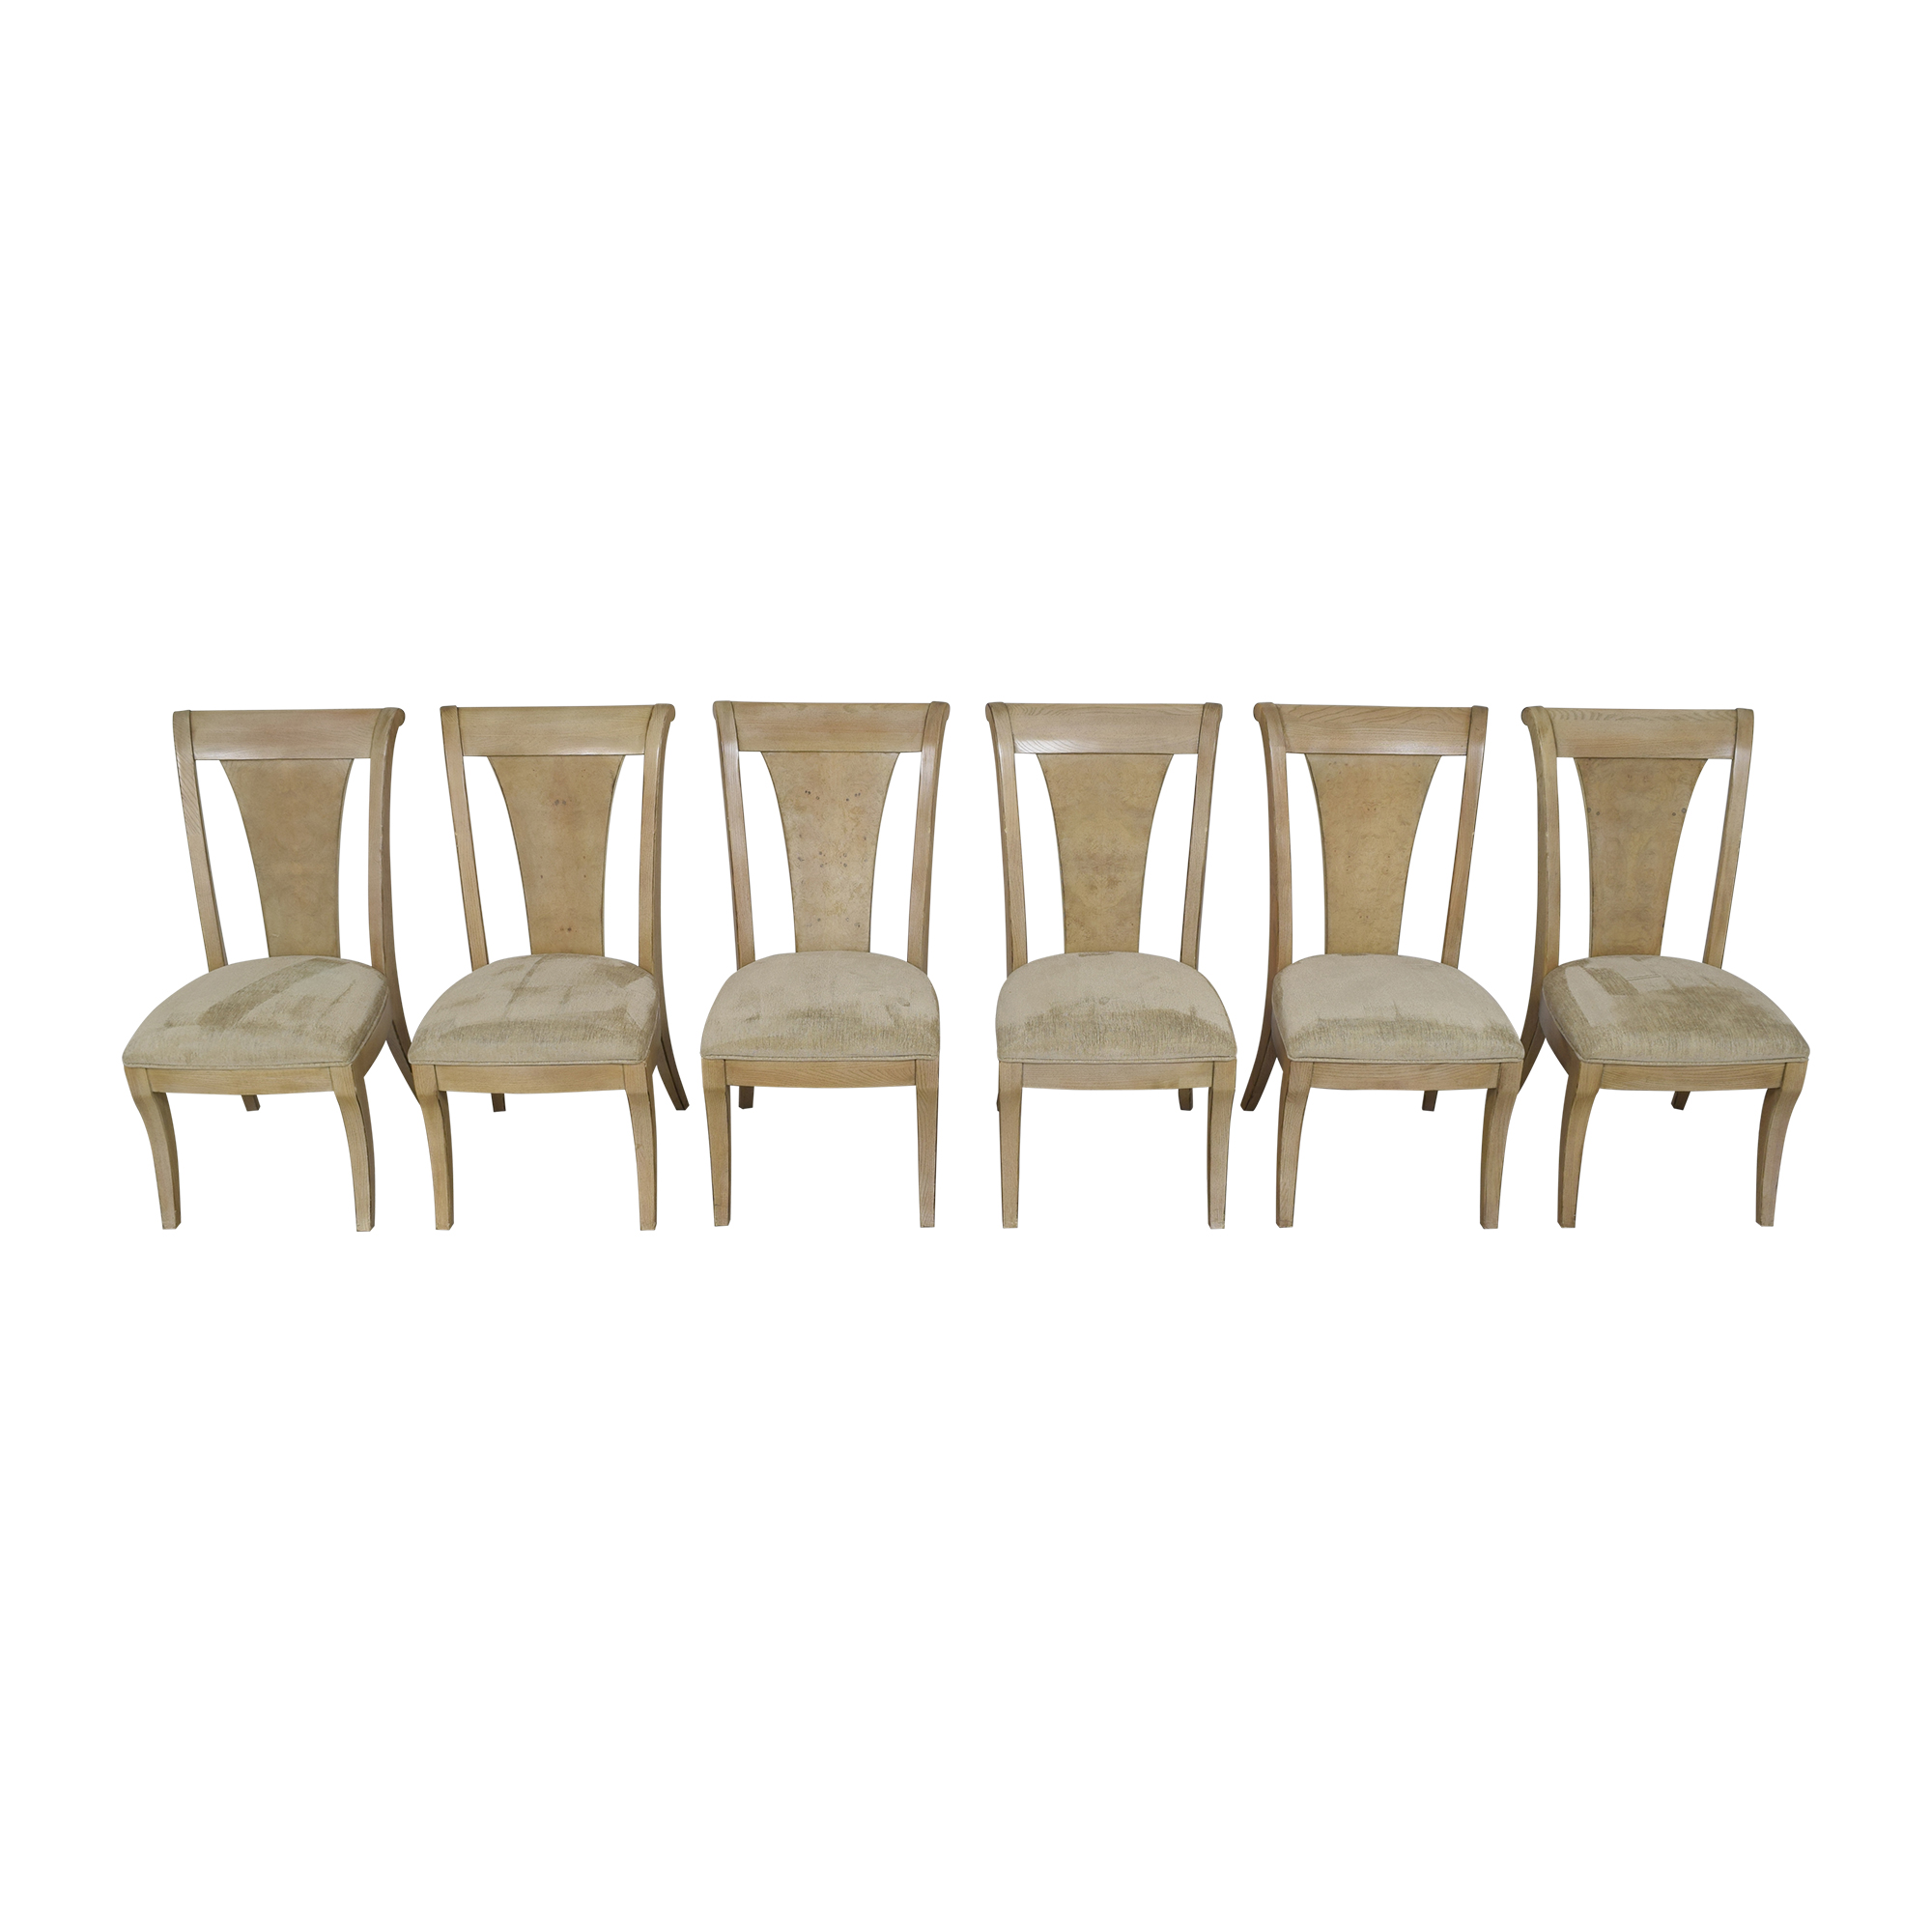 Drexel Heritage Drexel Heritage Side Dining Chairs on sale